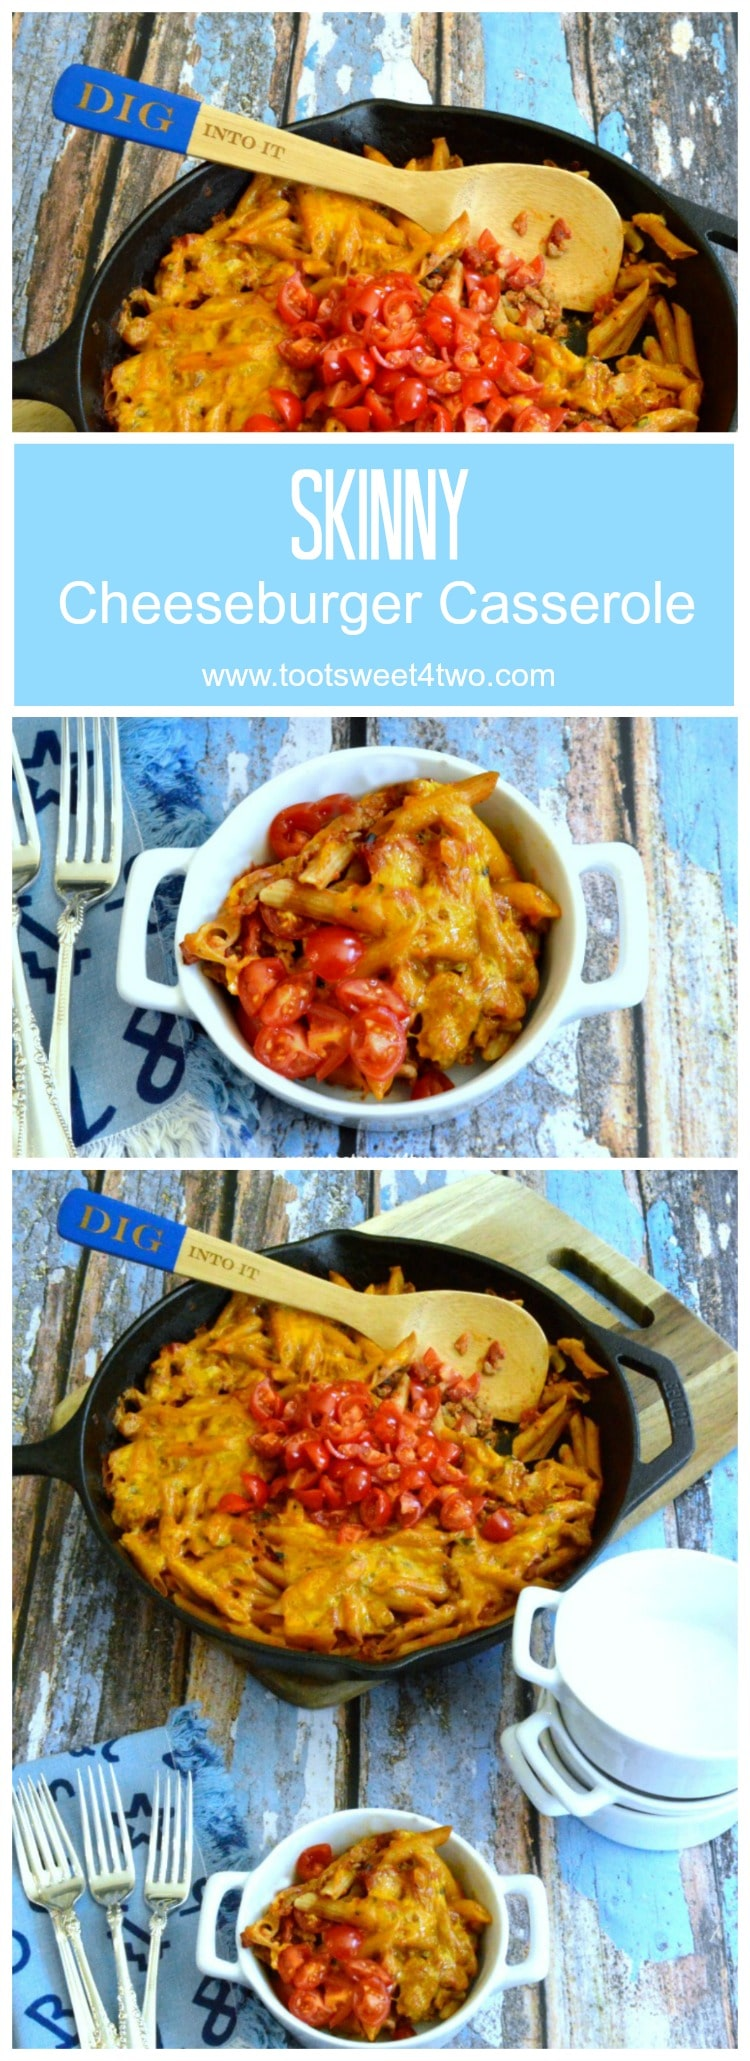 An easy and classic, kid-friendly, comfort-food recipe made healthier, Skinny Cheeseburger Casserole delivers on many levels! Adapted from upcoming cookbook, Family Favorite Casserole Recipes.   www.tootsweet4two.com